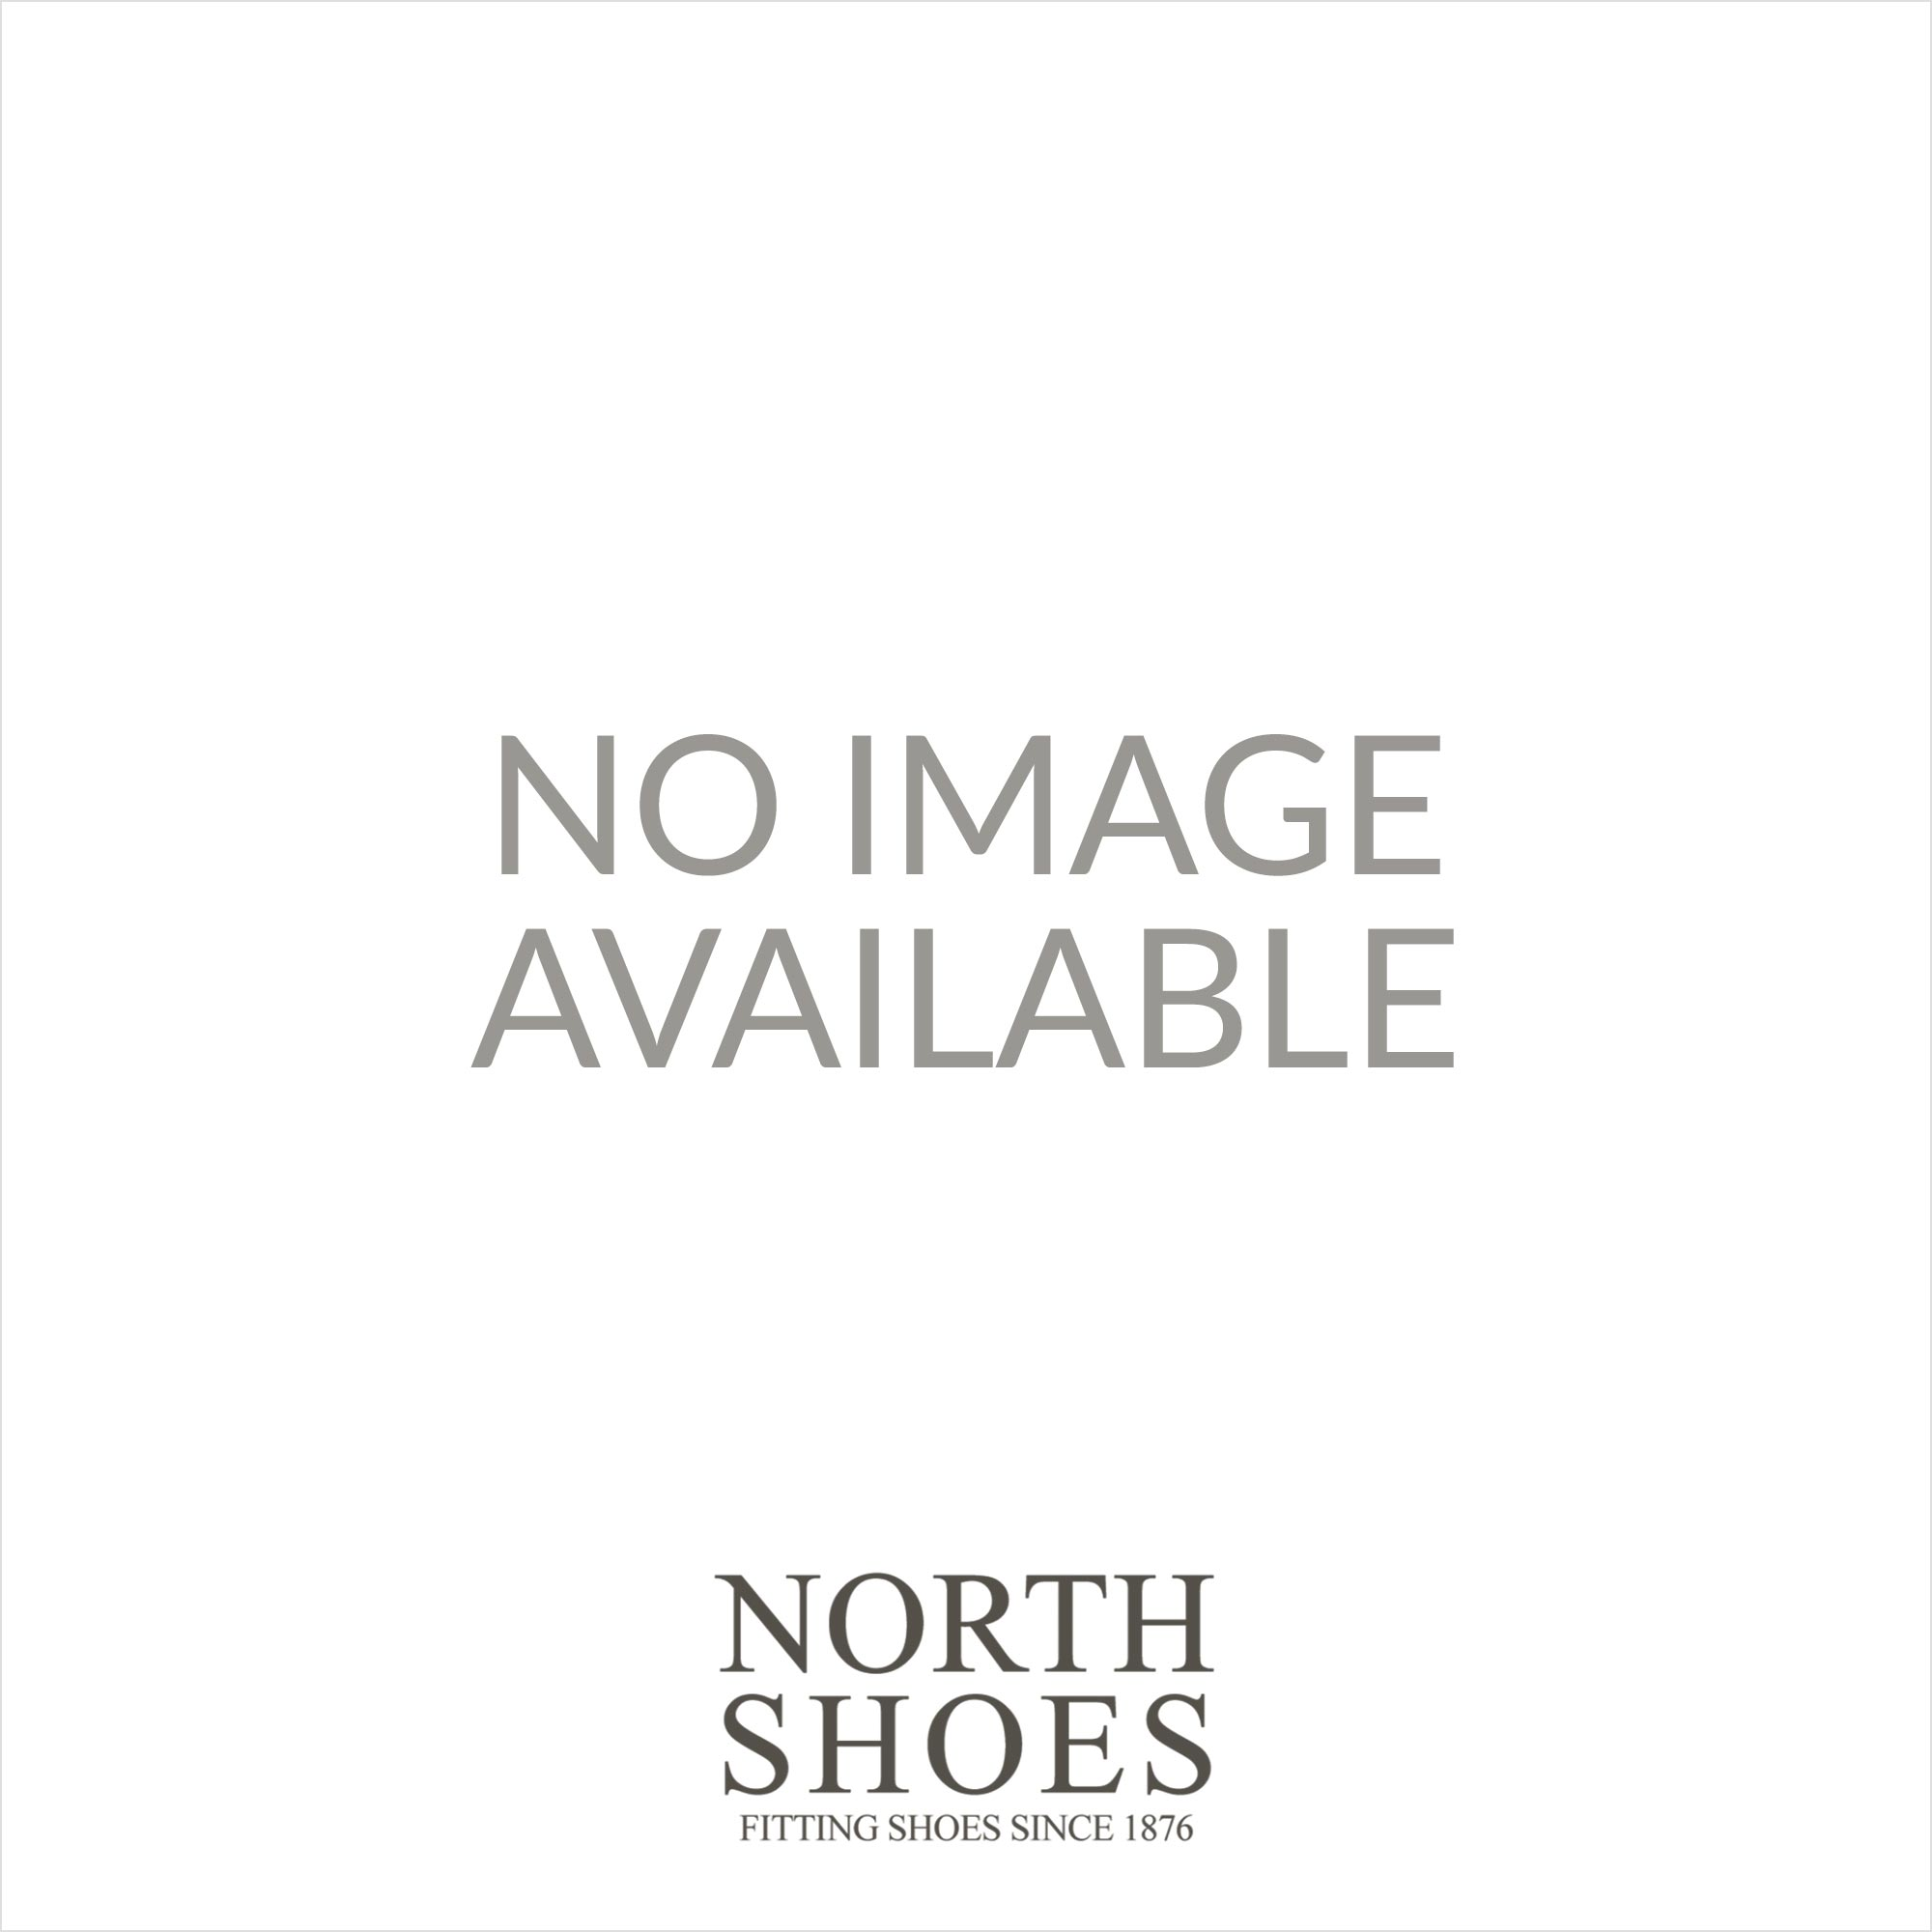 f6c9cf32b75 Clarks Un Blush Go Black Patent Leather Womens Slip On Loafer Shoe - Clarks  from North Shoes UK